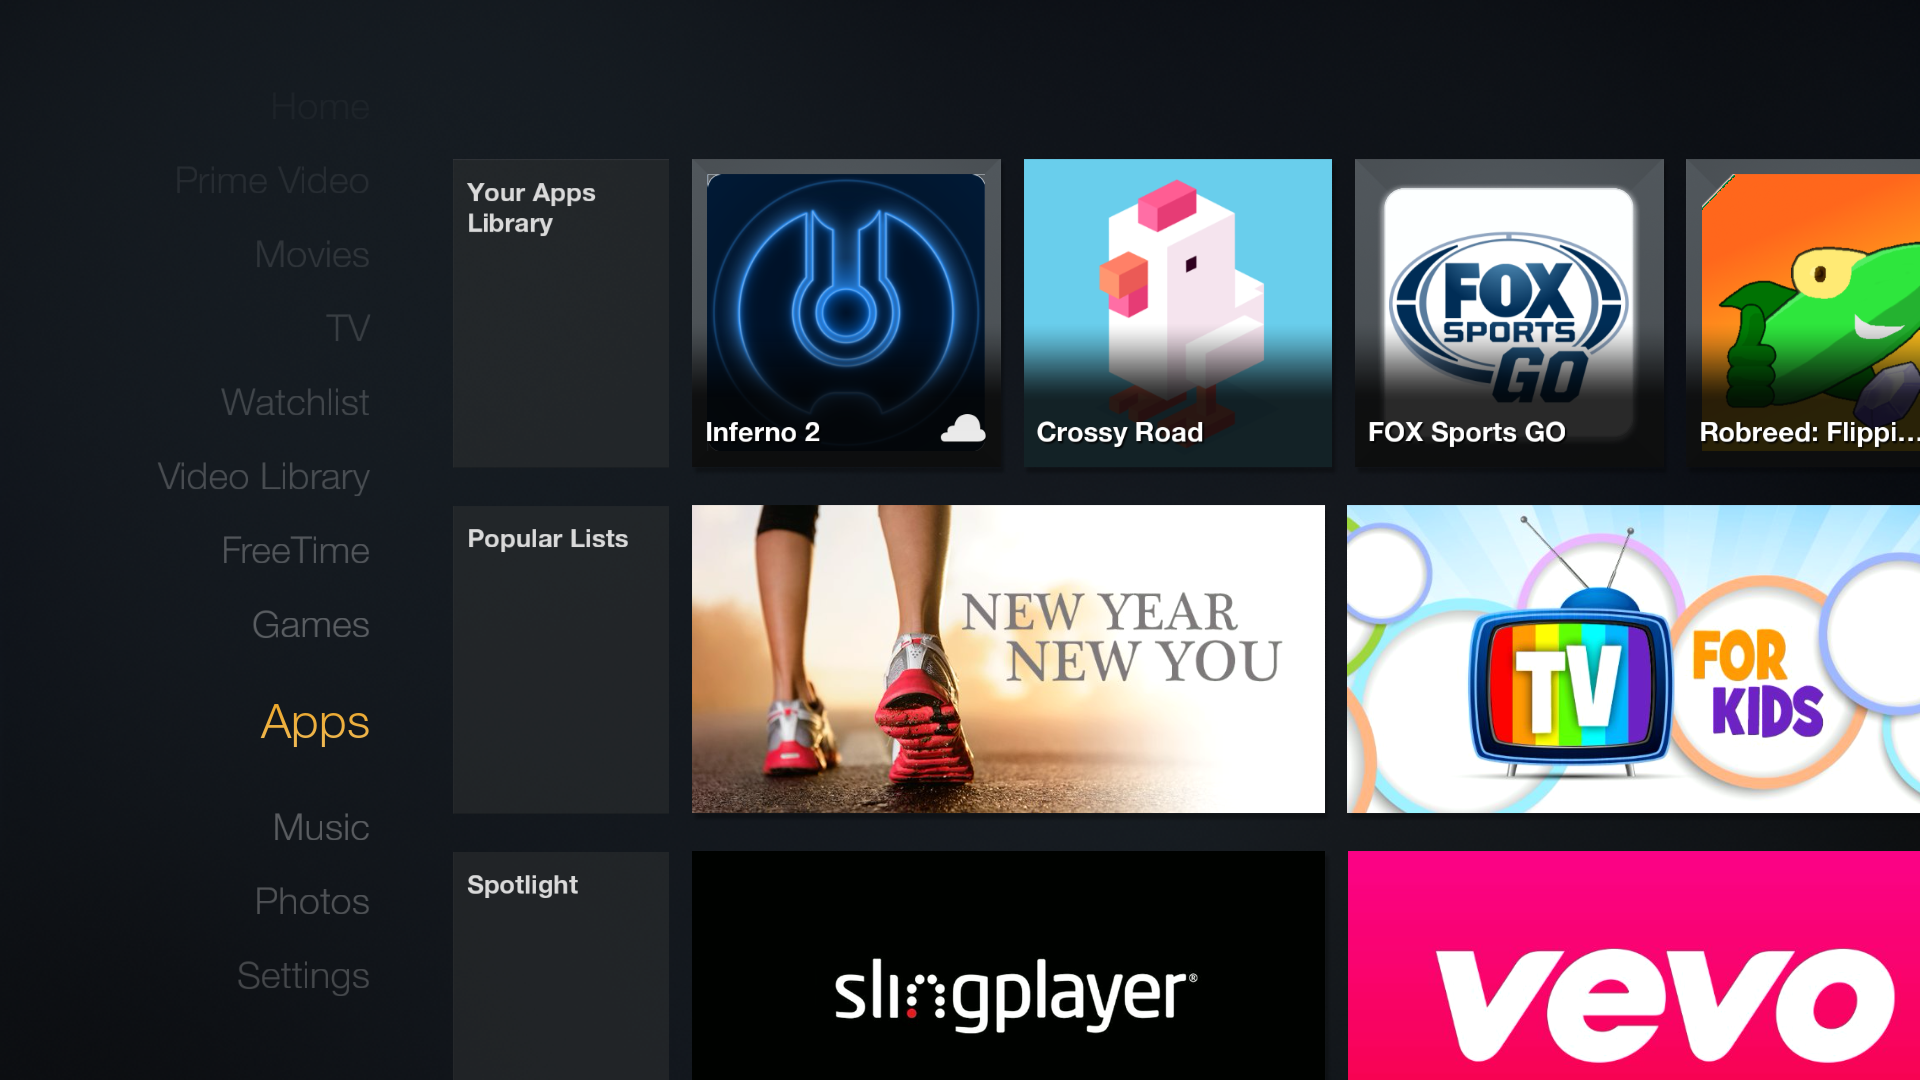 How to update an app on the Amazon Fire TV or Fire TV Stick AFTVnews #C7045B 1920 1080